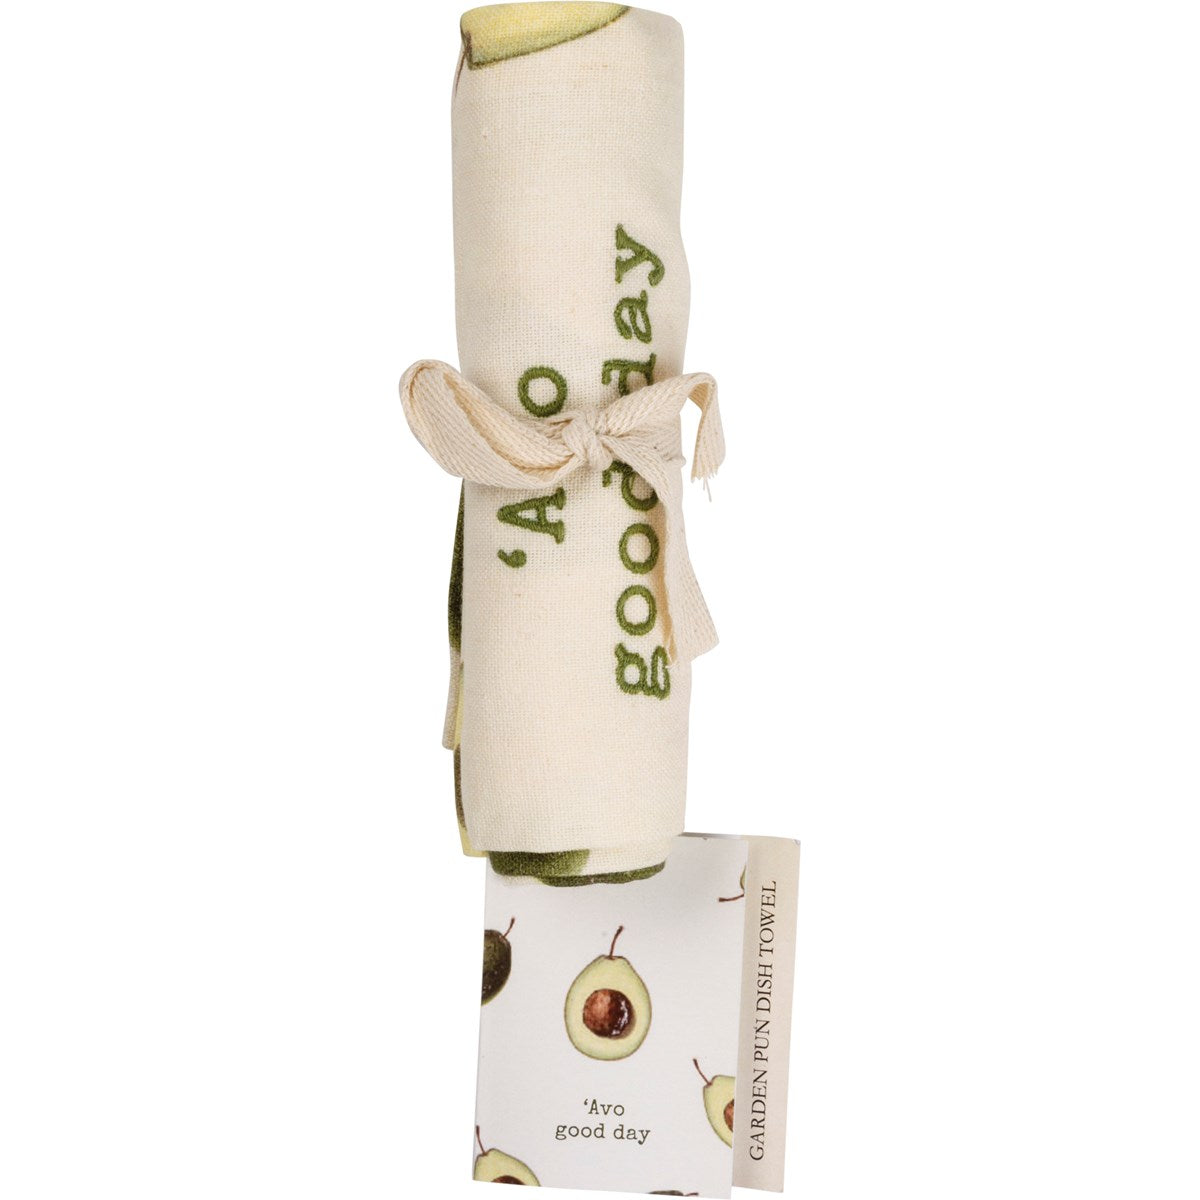 Avo Good Day Tea Towel